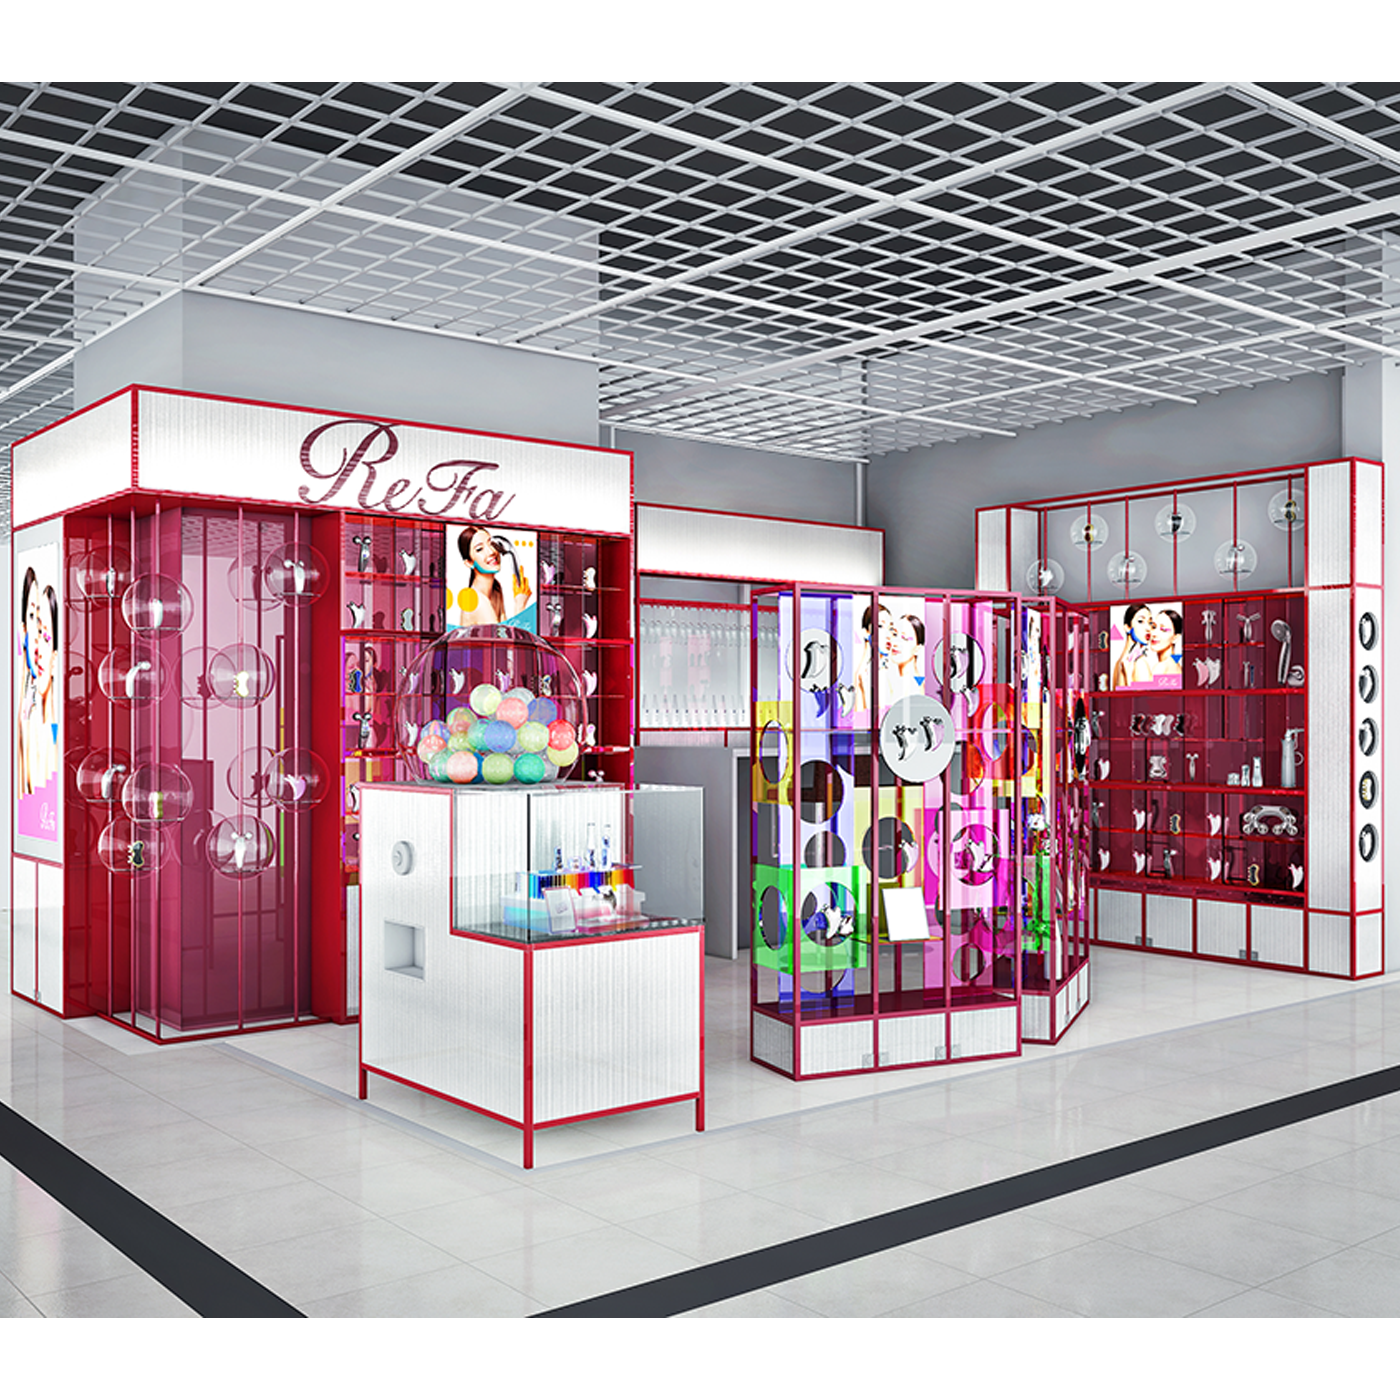 ReFa opens its first shop-within-a-shop at electronics retail store BIC CAMERA YURAKUCHO